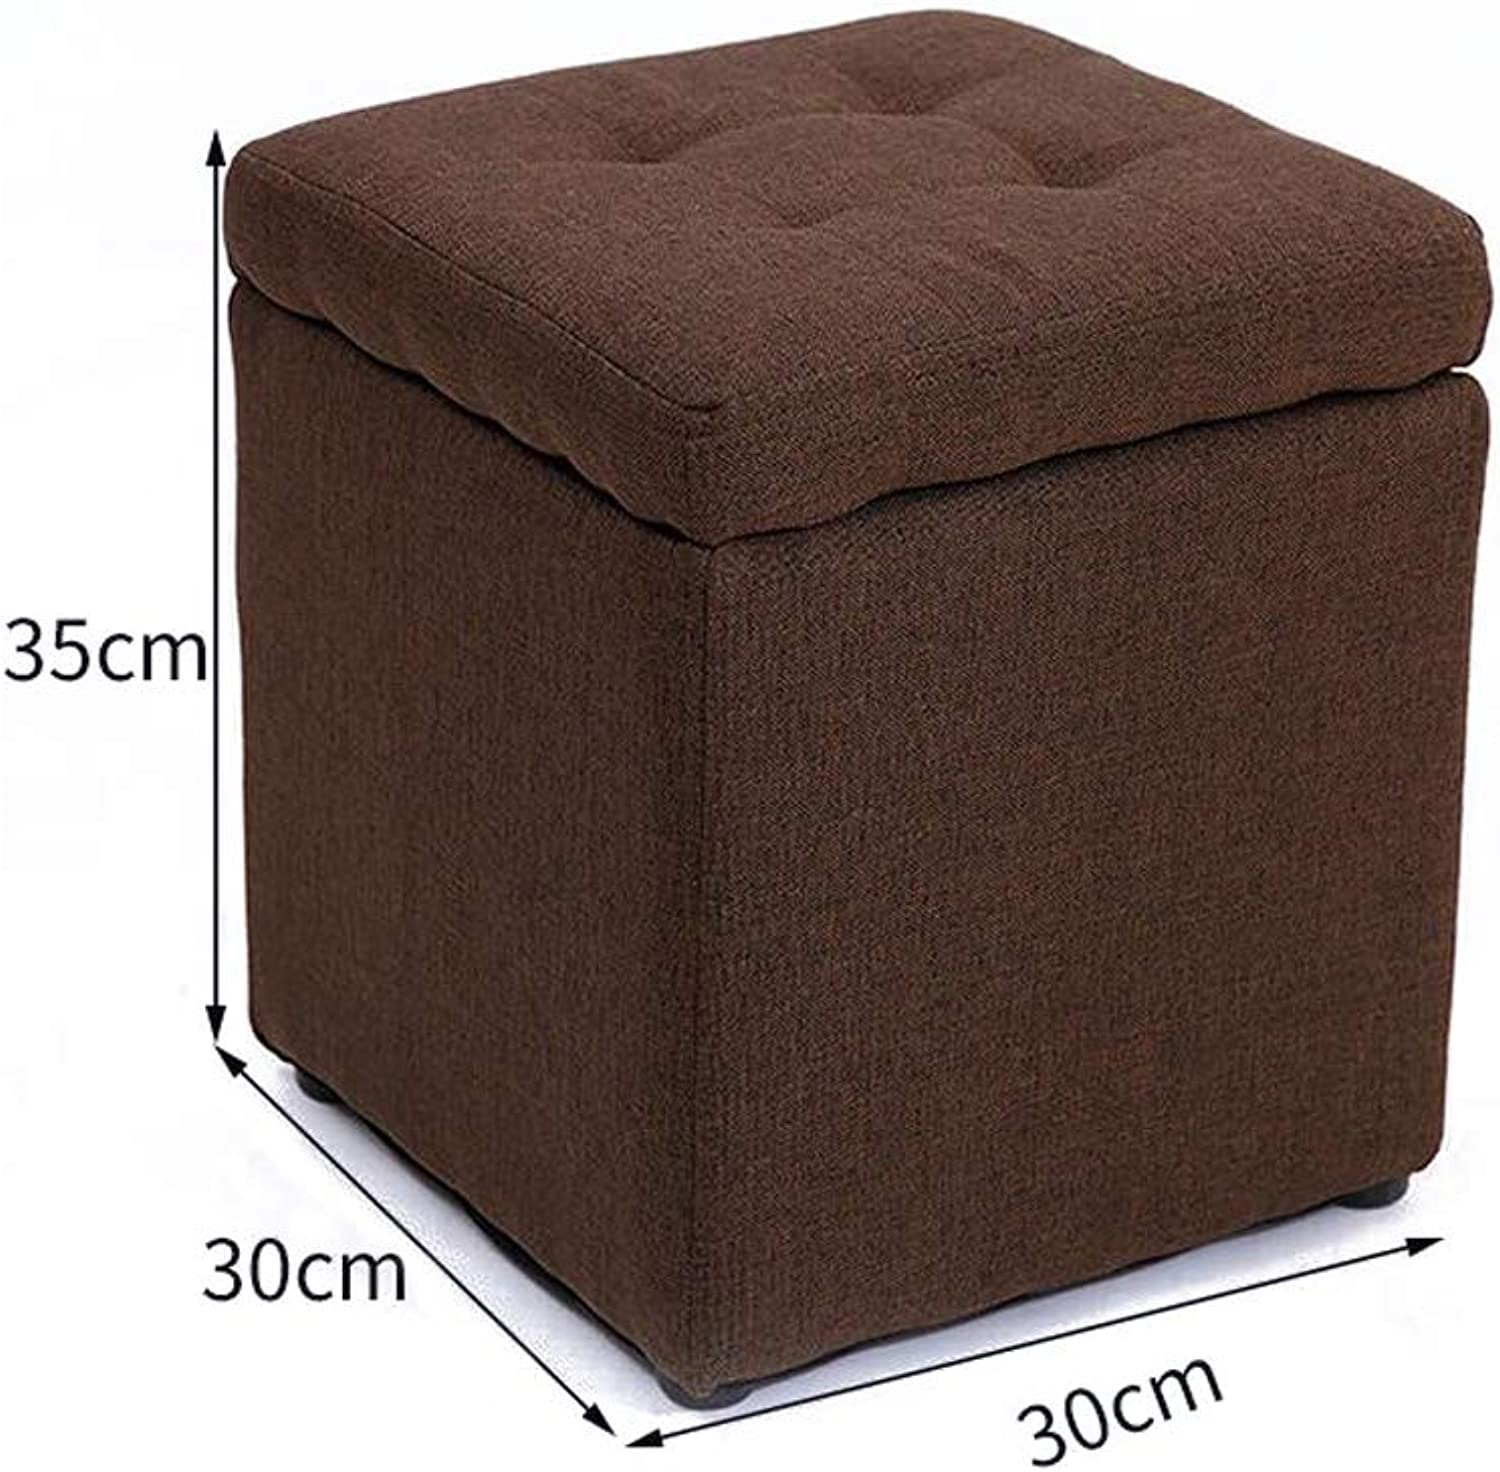 MXD Stool Creative Multifunctional Storage Stool Fashion Living Room Sofa Stool (color   Brown)